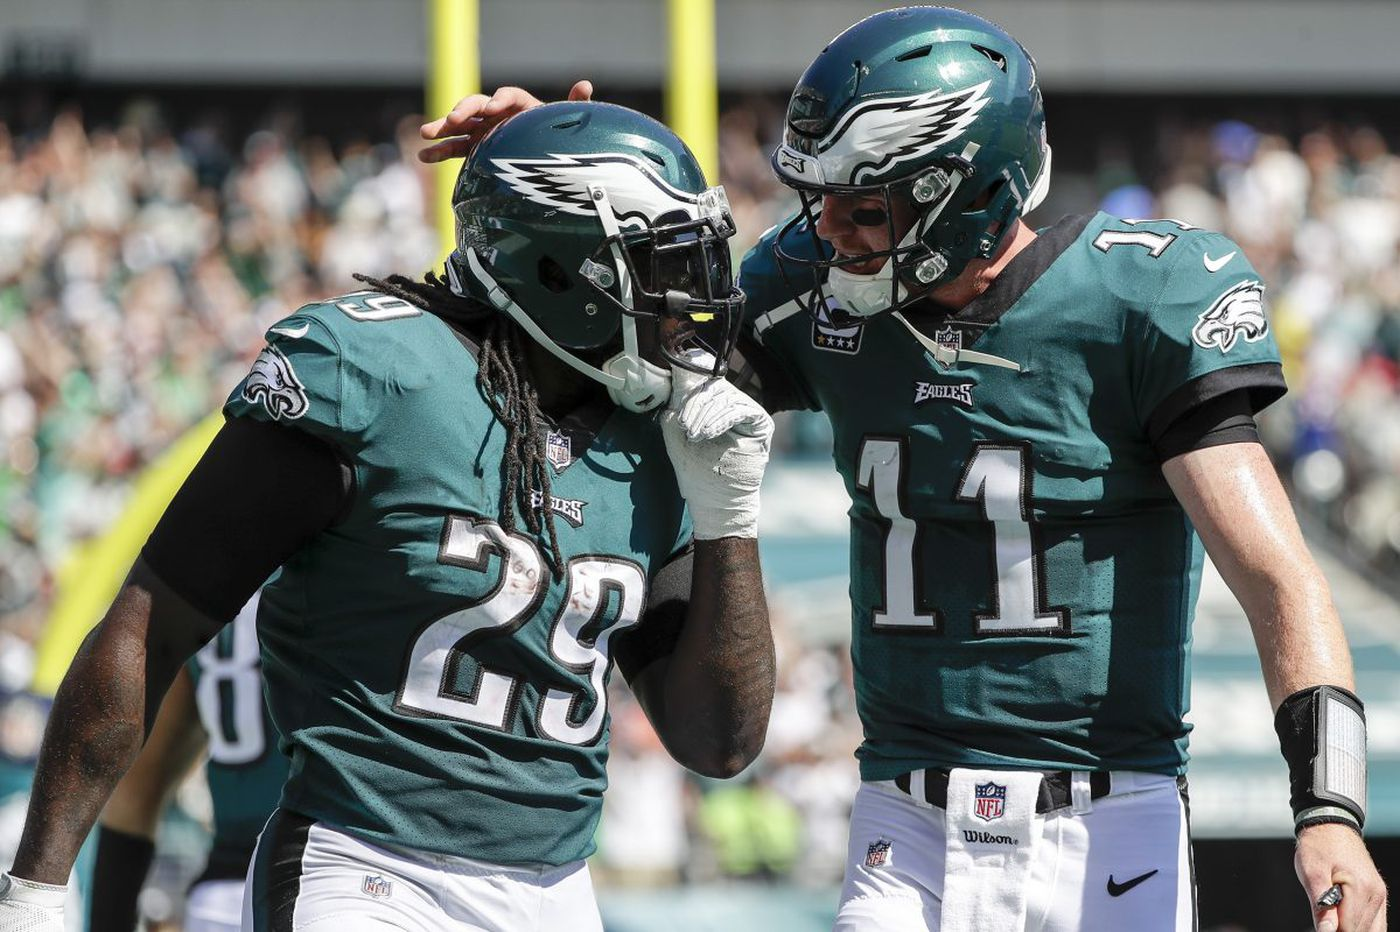 Eagles-Giants: What we learned